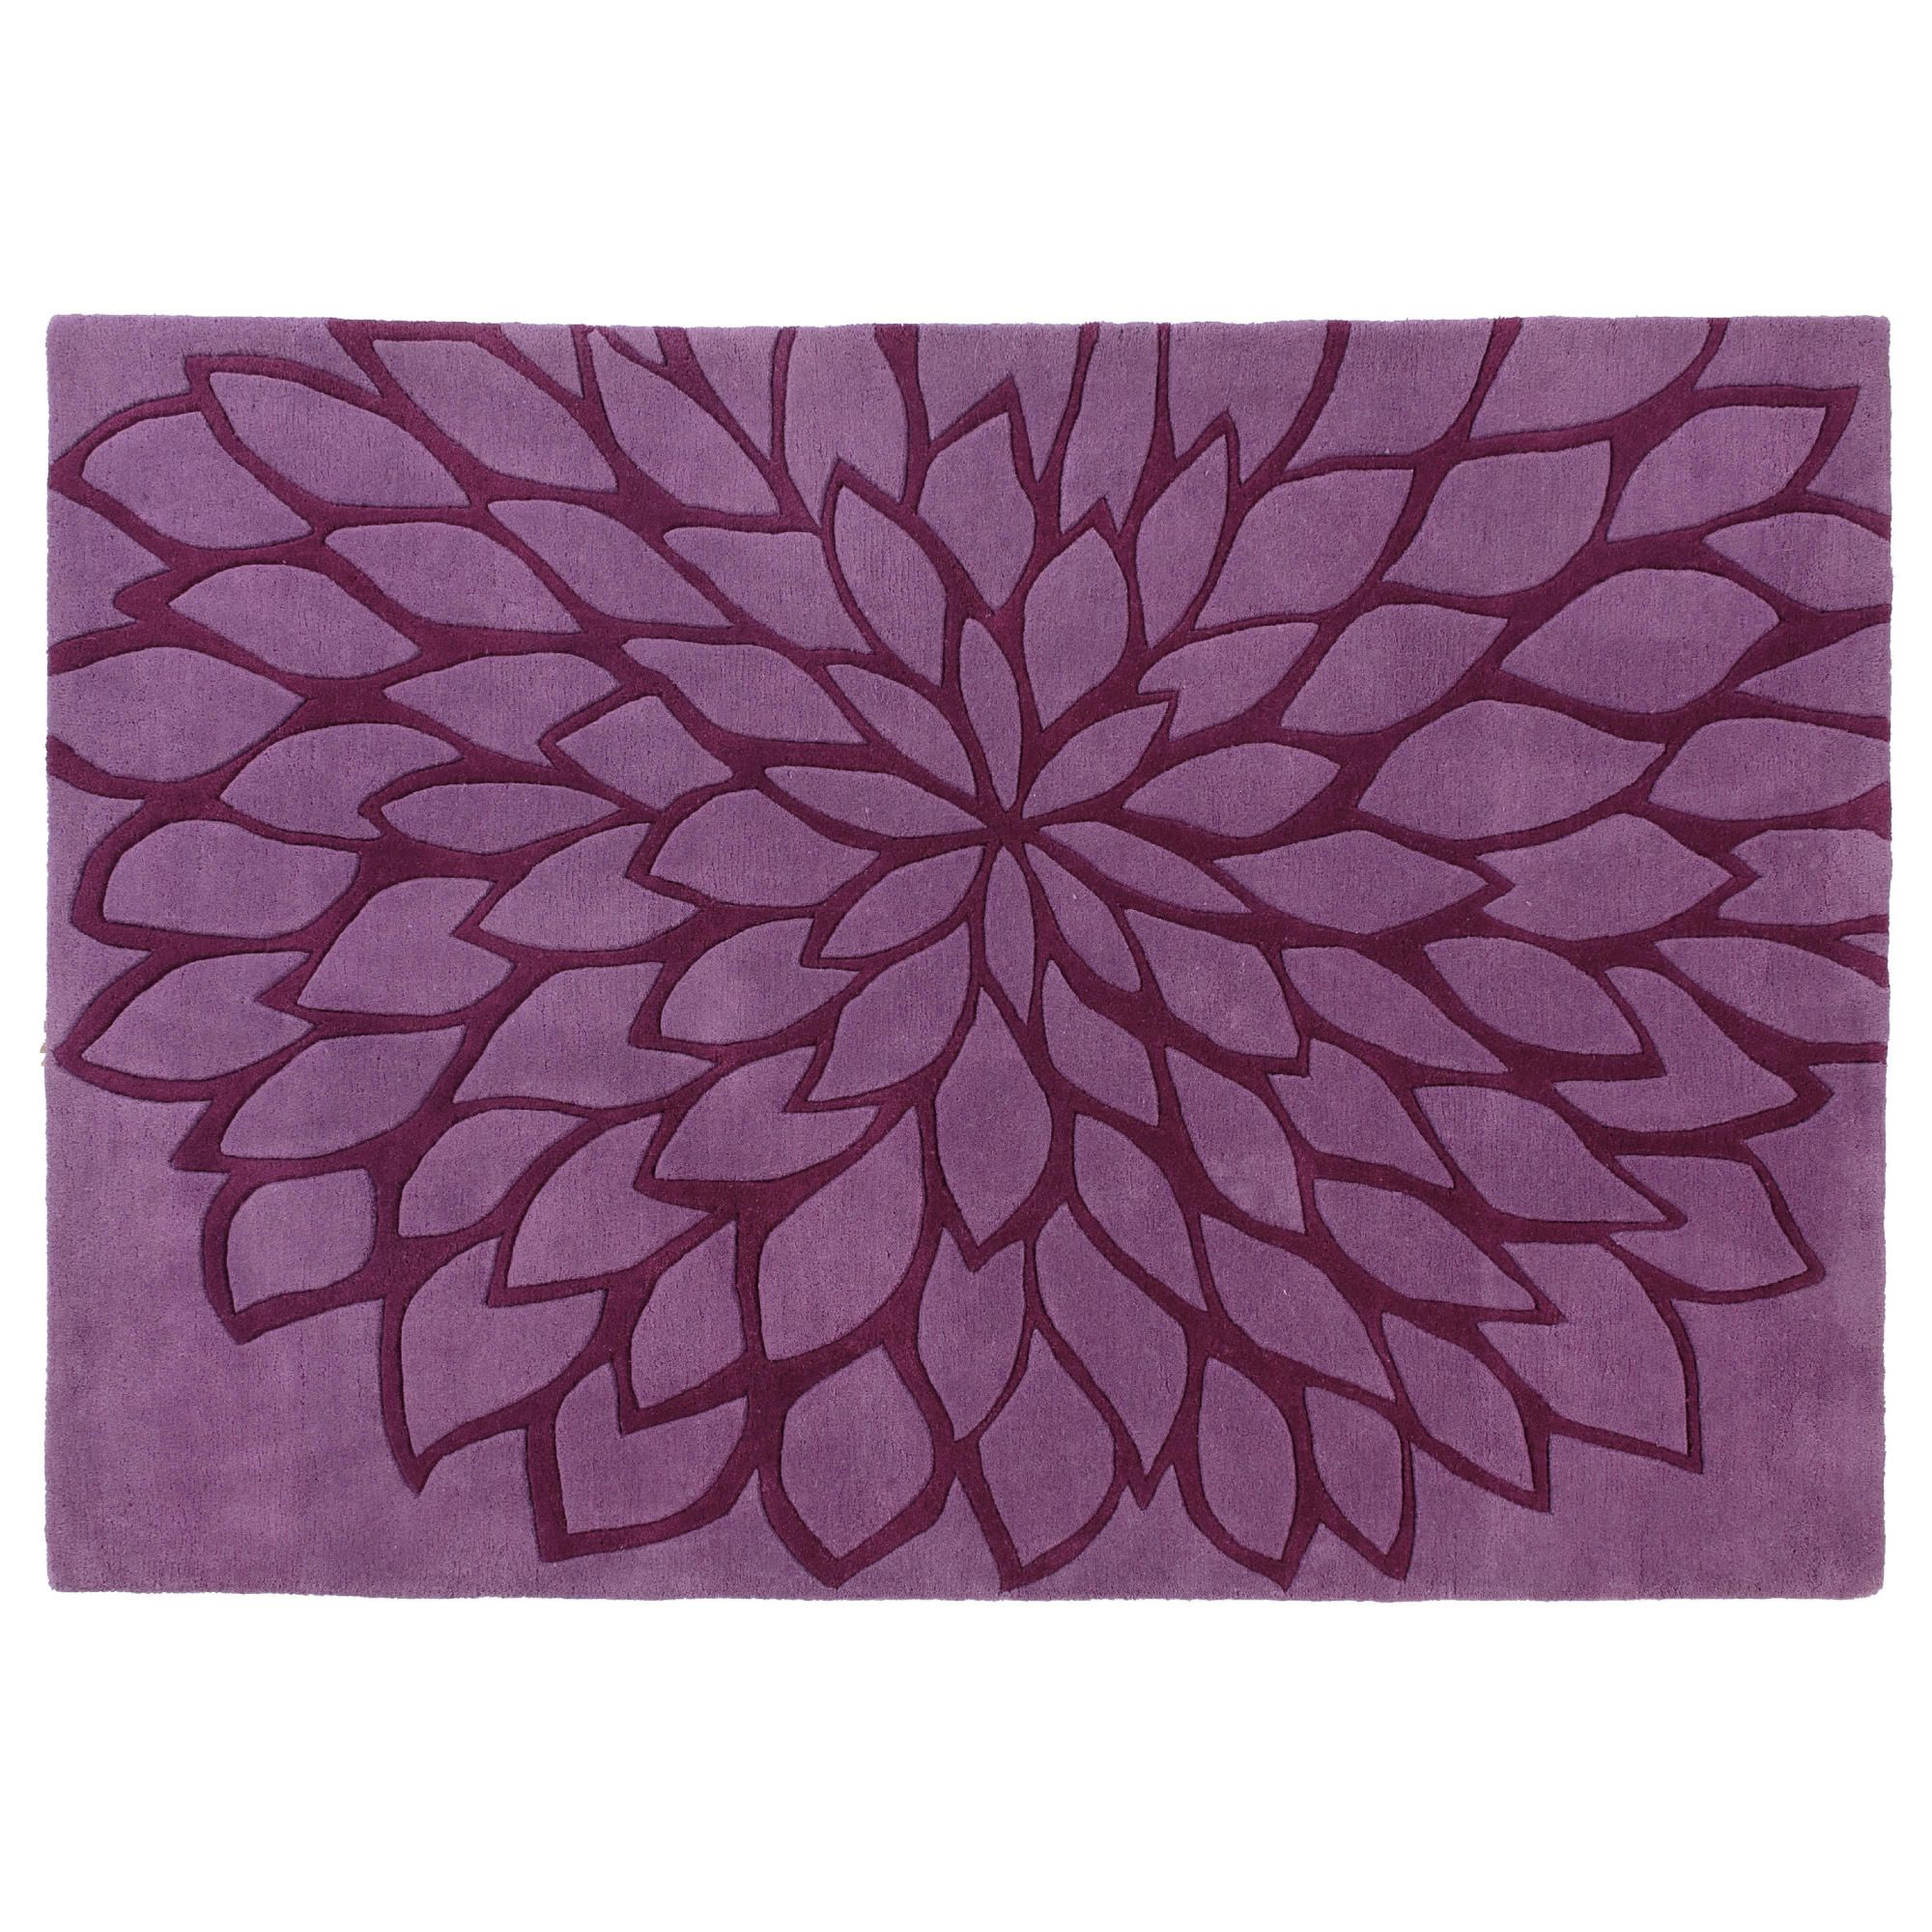 Tesco rugs large flower rug plum 120x170cm thousands of for Plum and cream rug